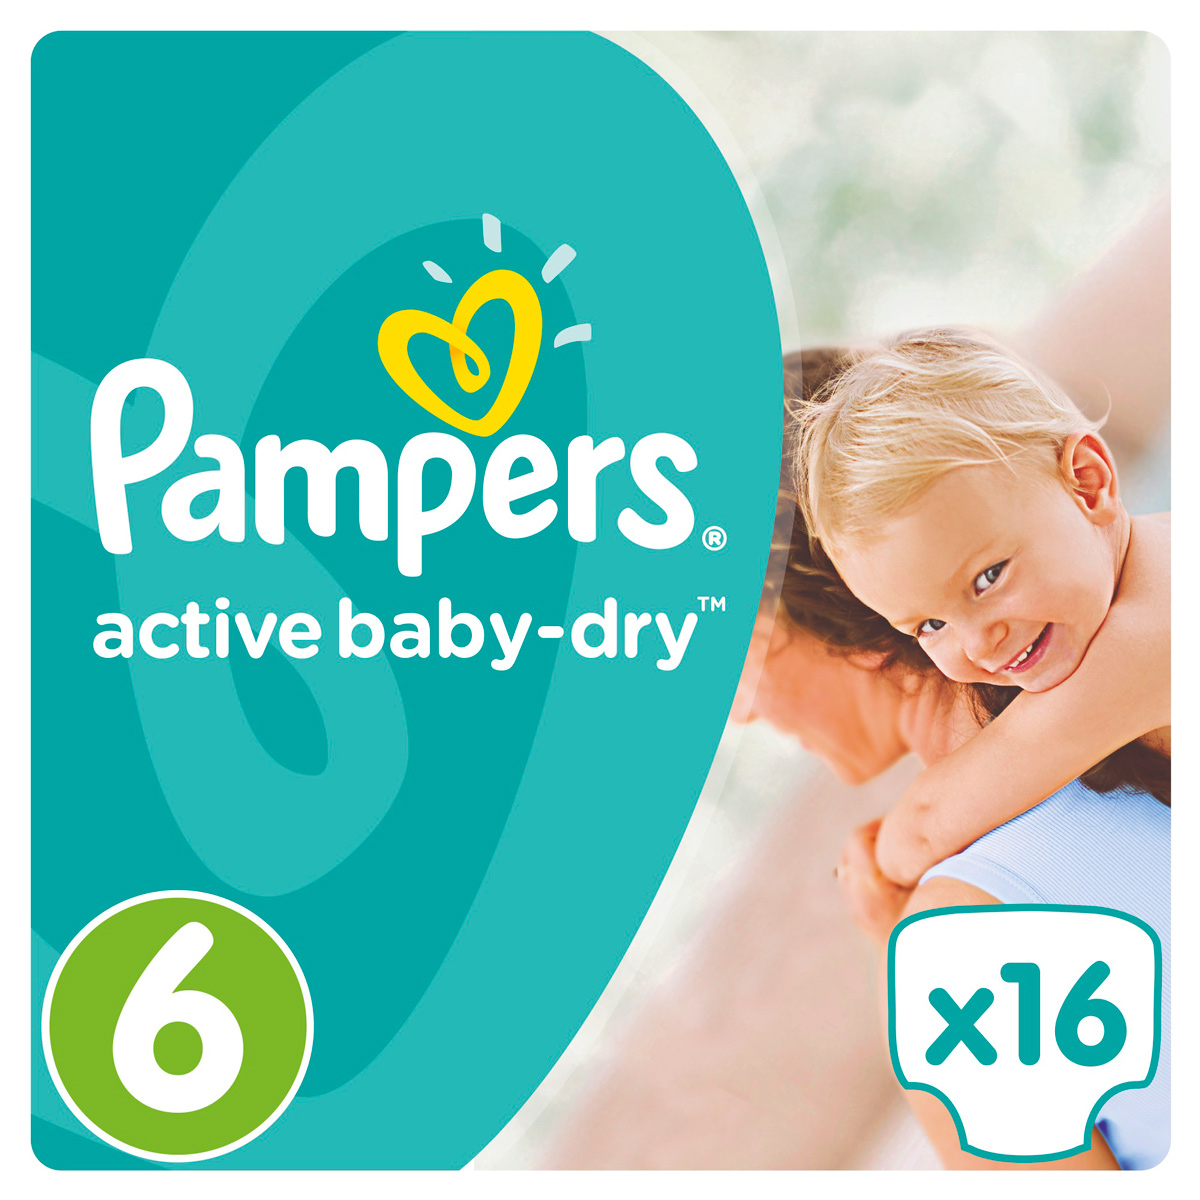 Pampers Active Baby Подгузники 6, 15+ кг, 16 шт подгузники pampers active baby dry размер 4 7 14 кг 132 шт